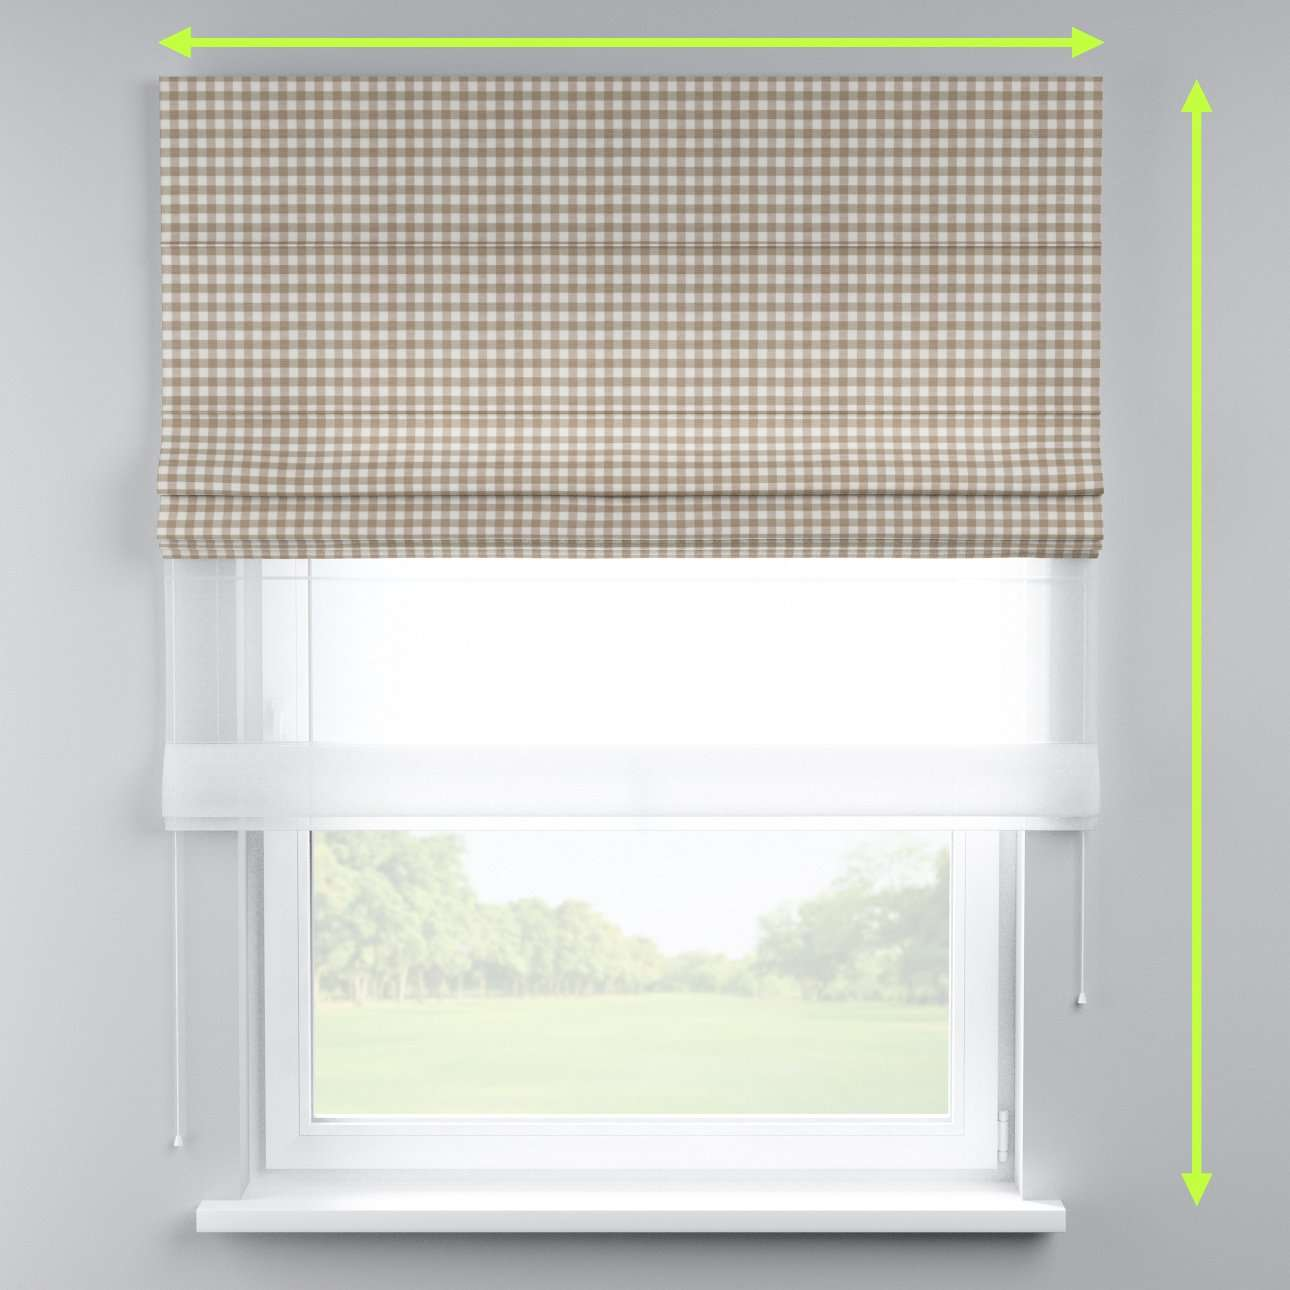 Voile and fabric roman blind (DUO II) in collection Quadro, fabric: 136-06